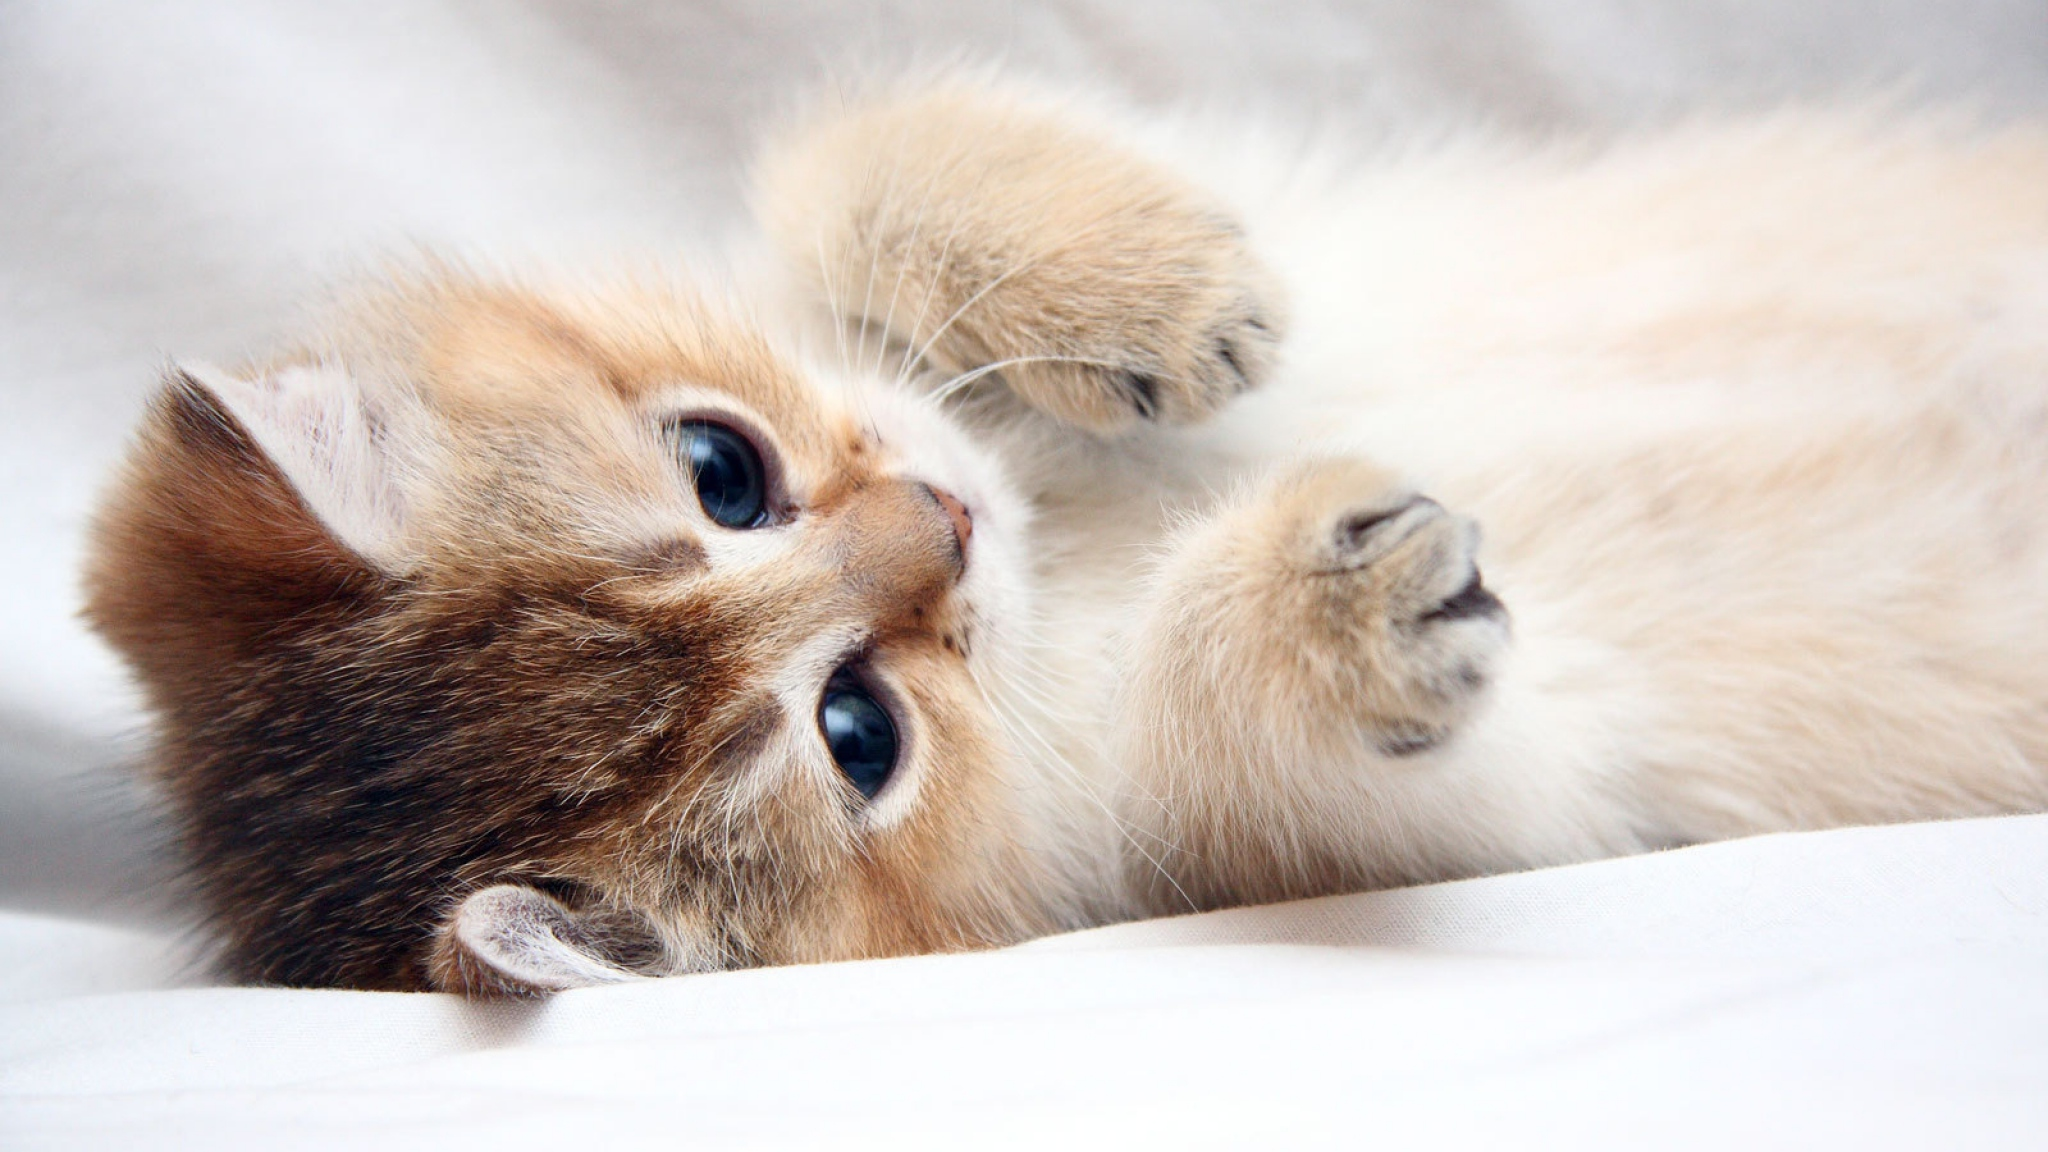 Download Wallpaper 2048x1152 Cat Kitten Cute Foot Face HD HD 2048x1152